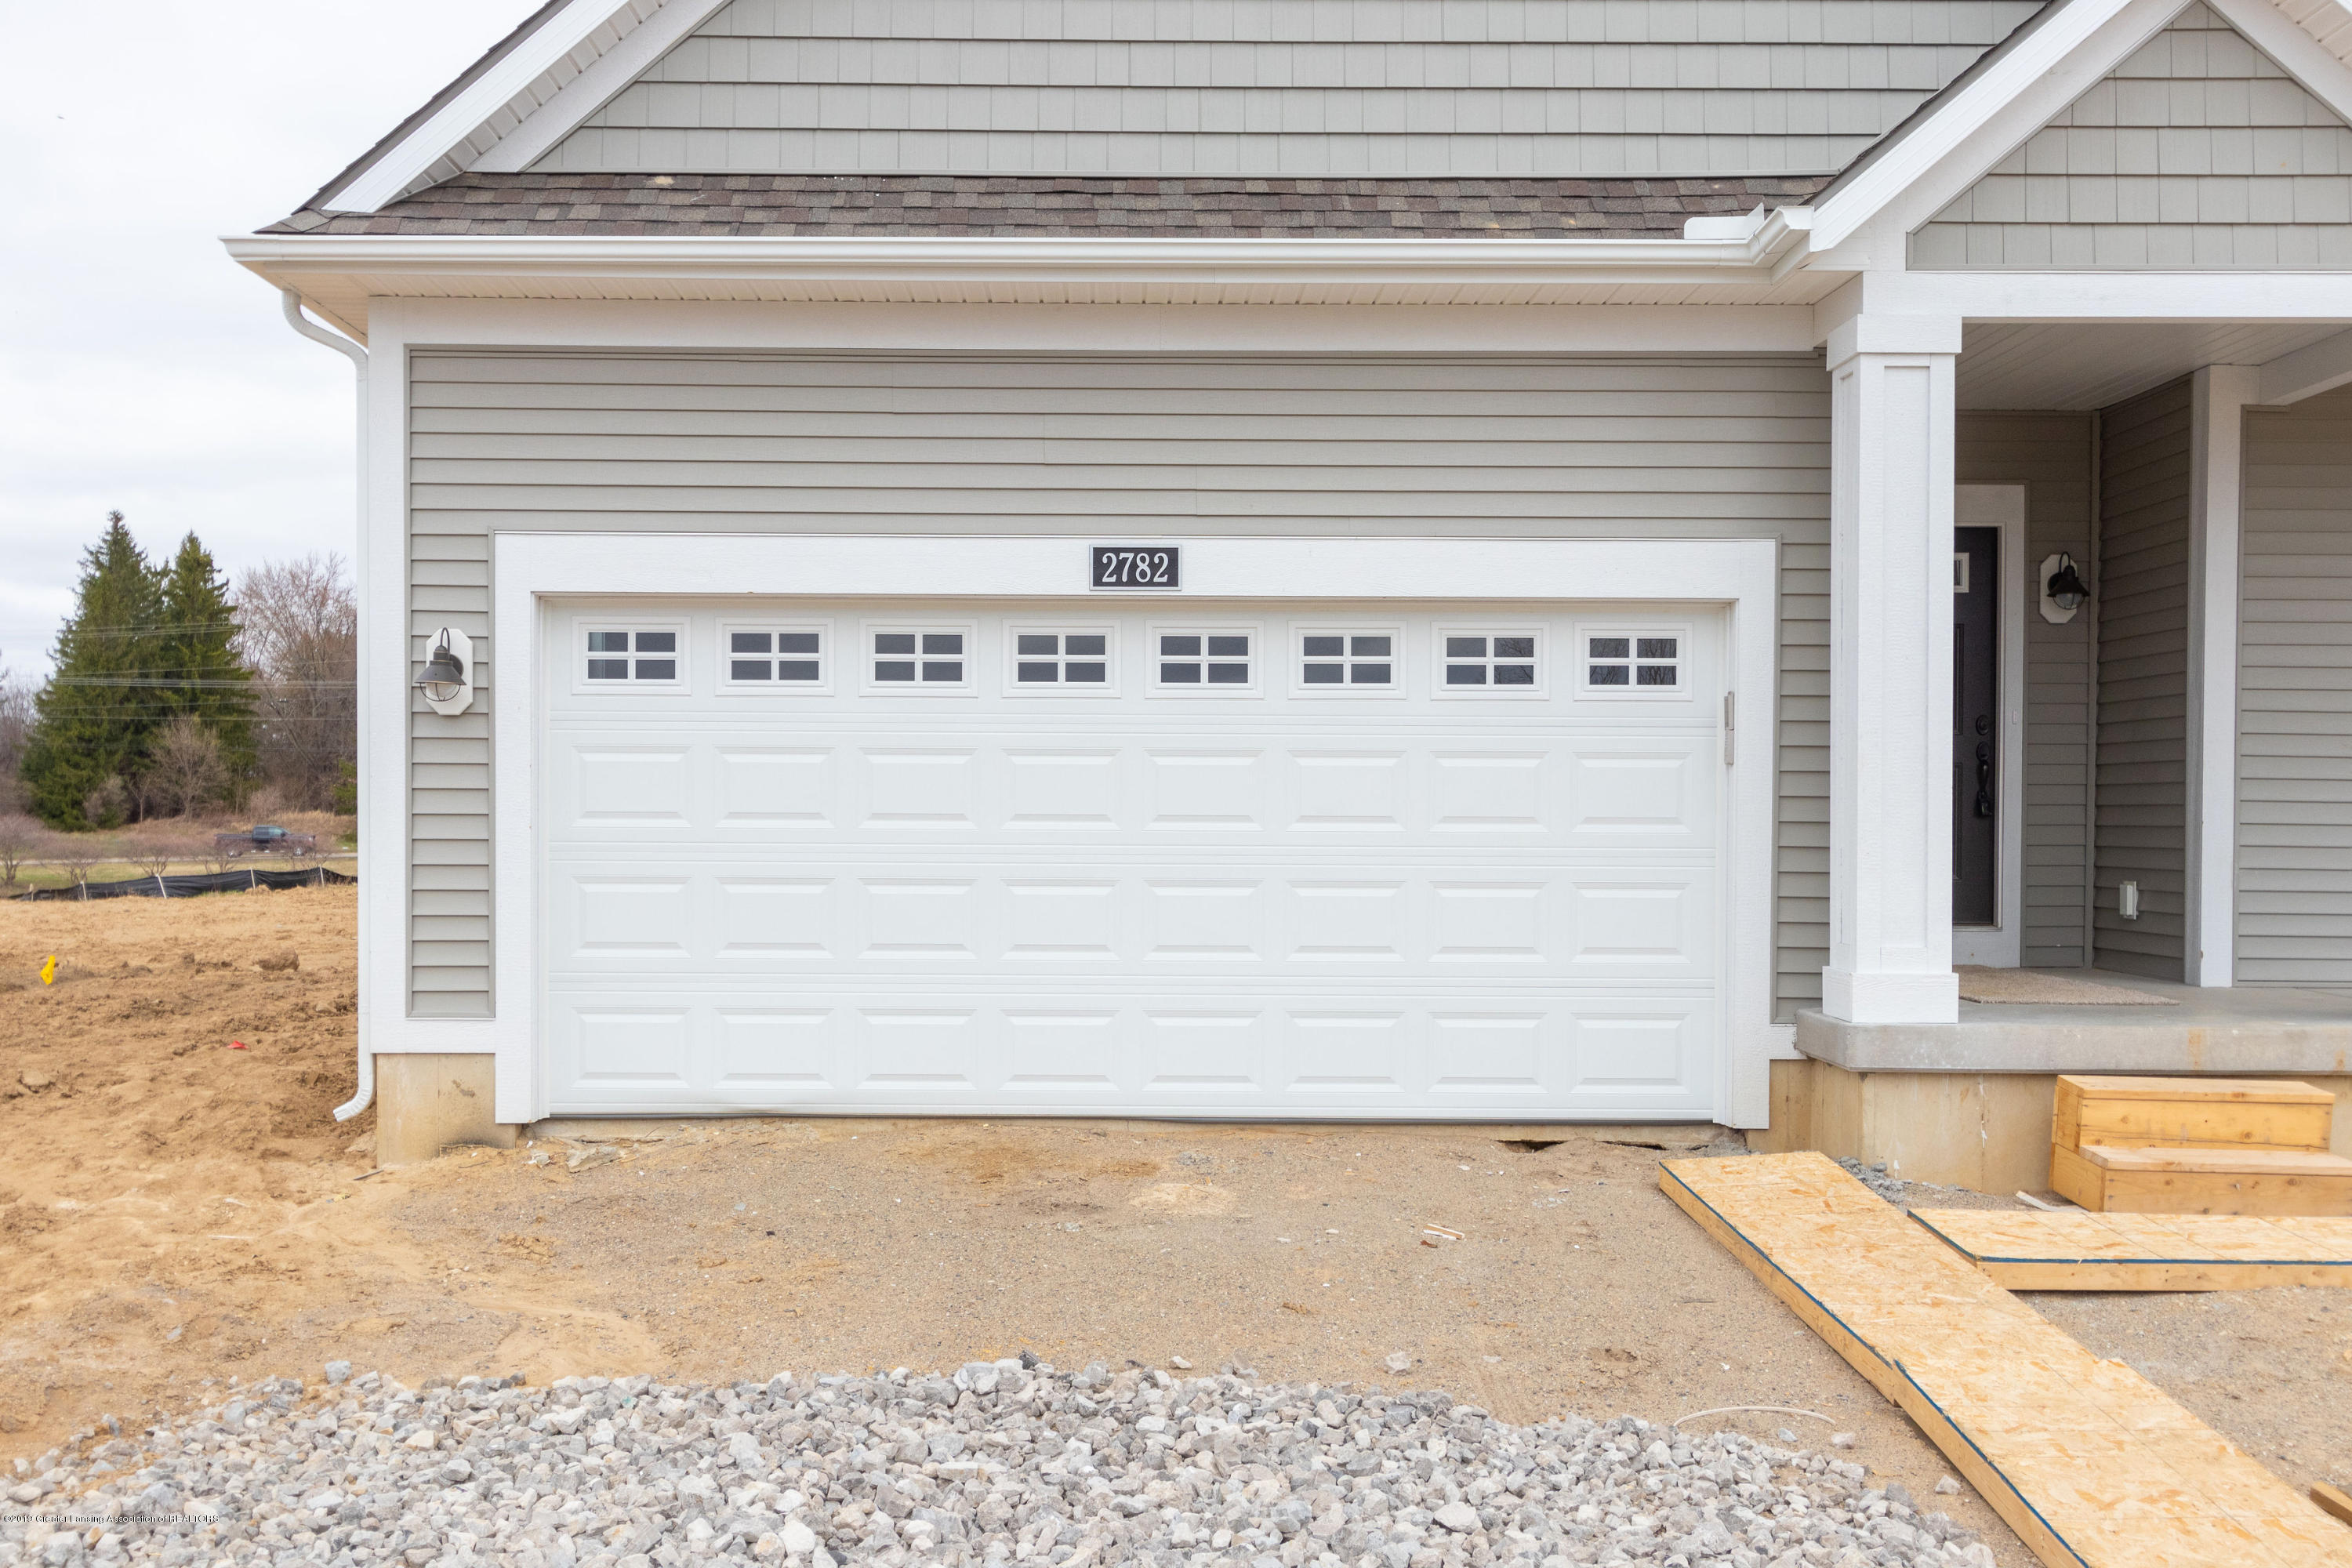 2782 Carnoustie Dr - Garage - 3